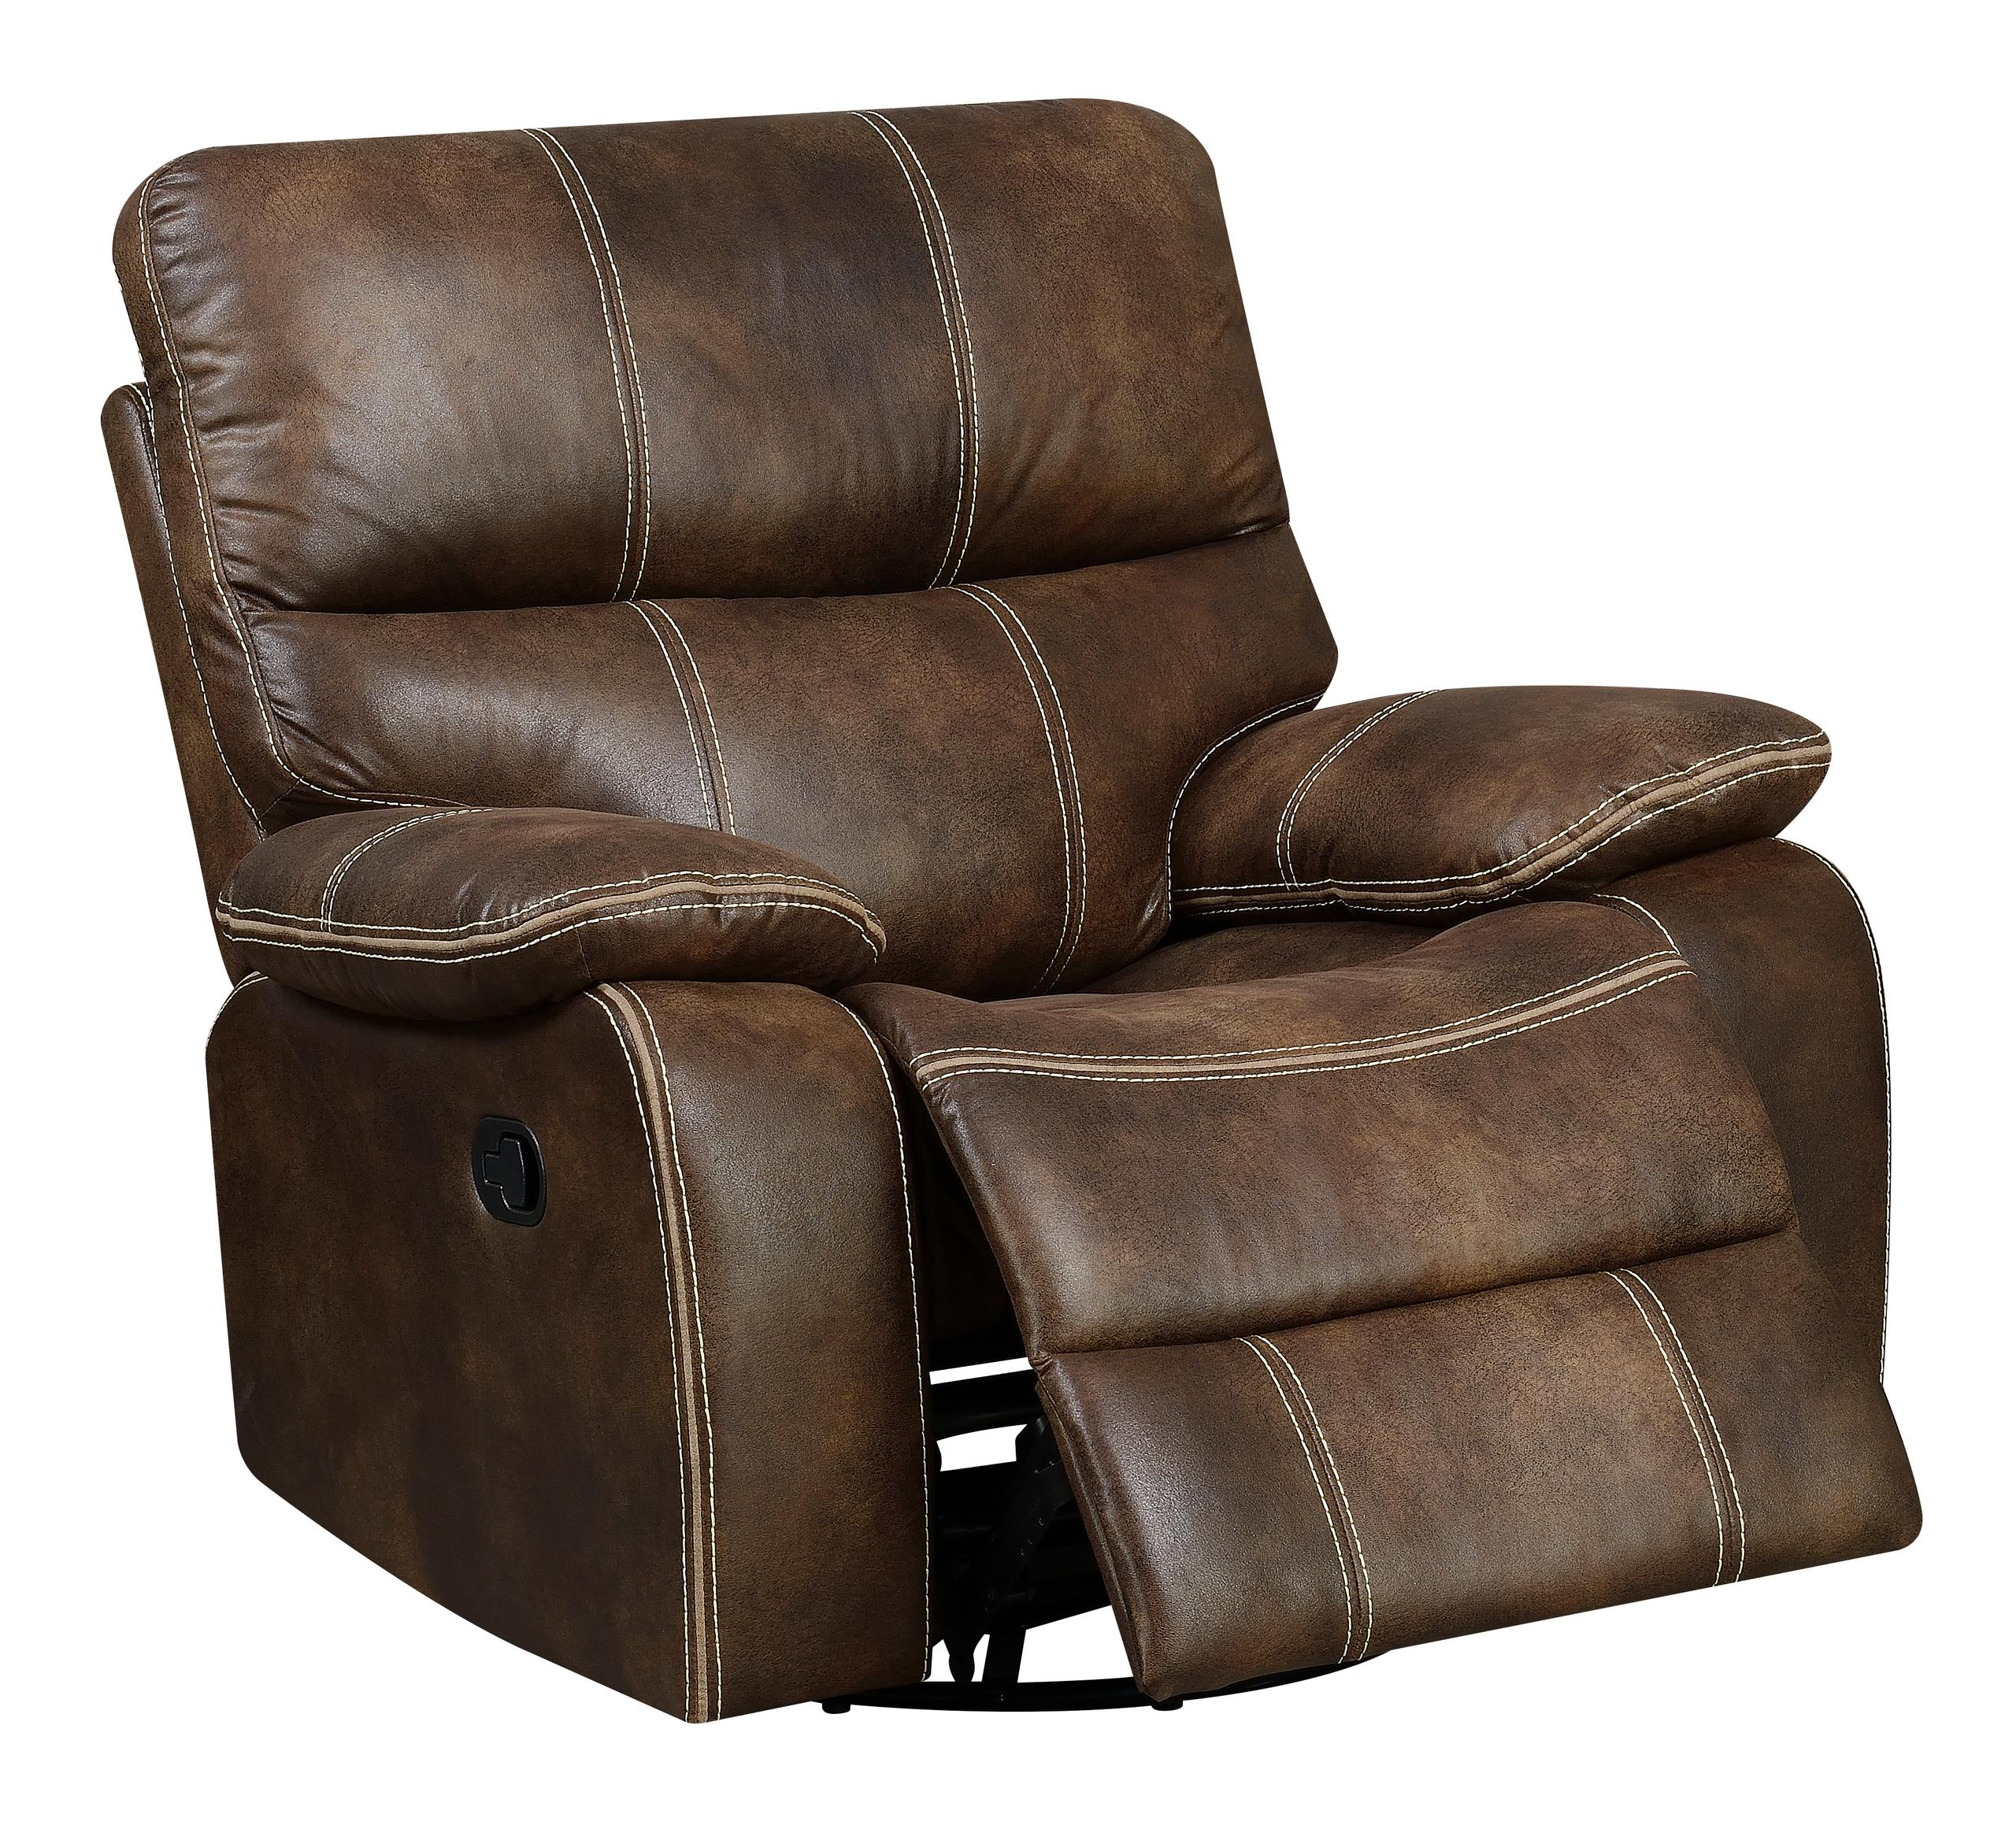 Emerald Home FurnishingsSwivel Gliding Recliner